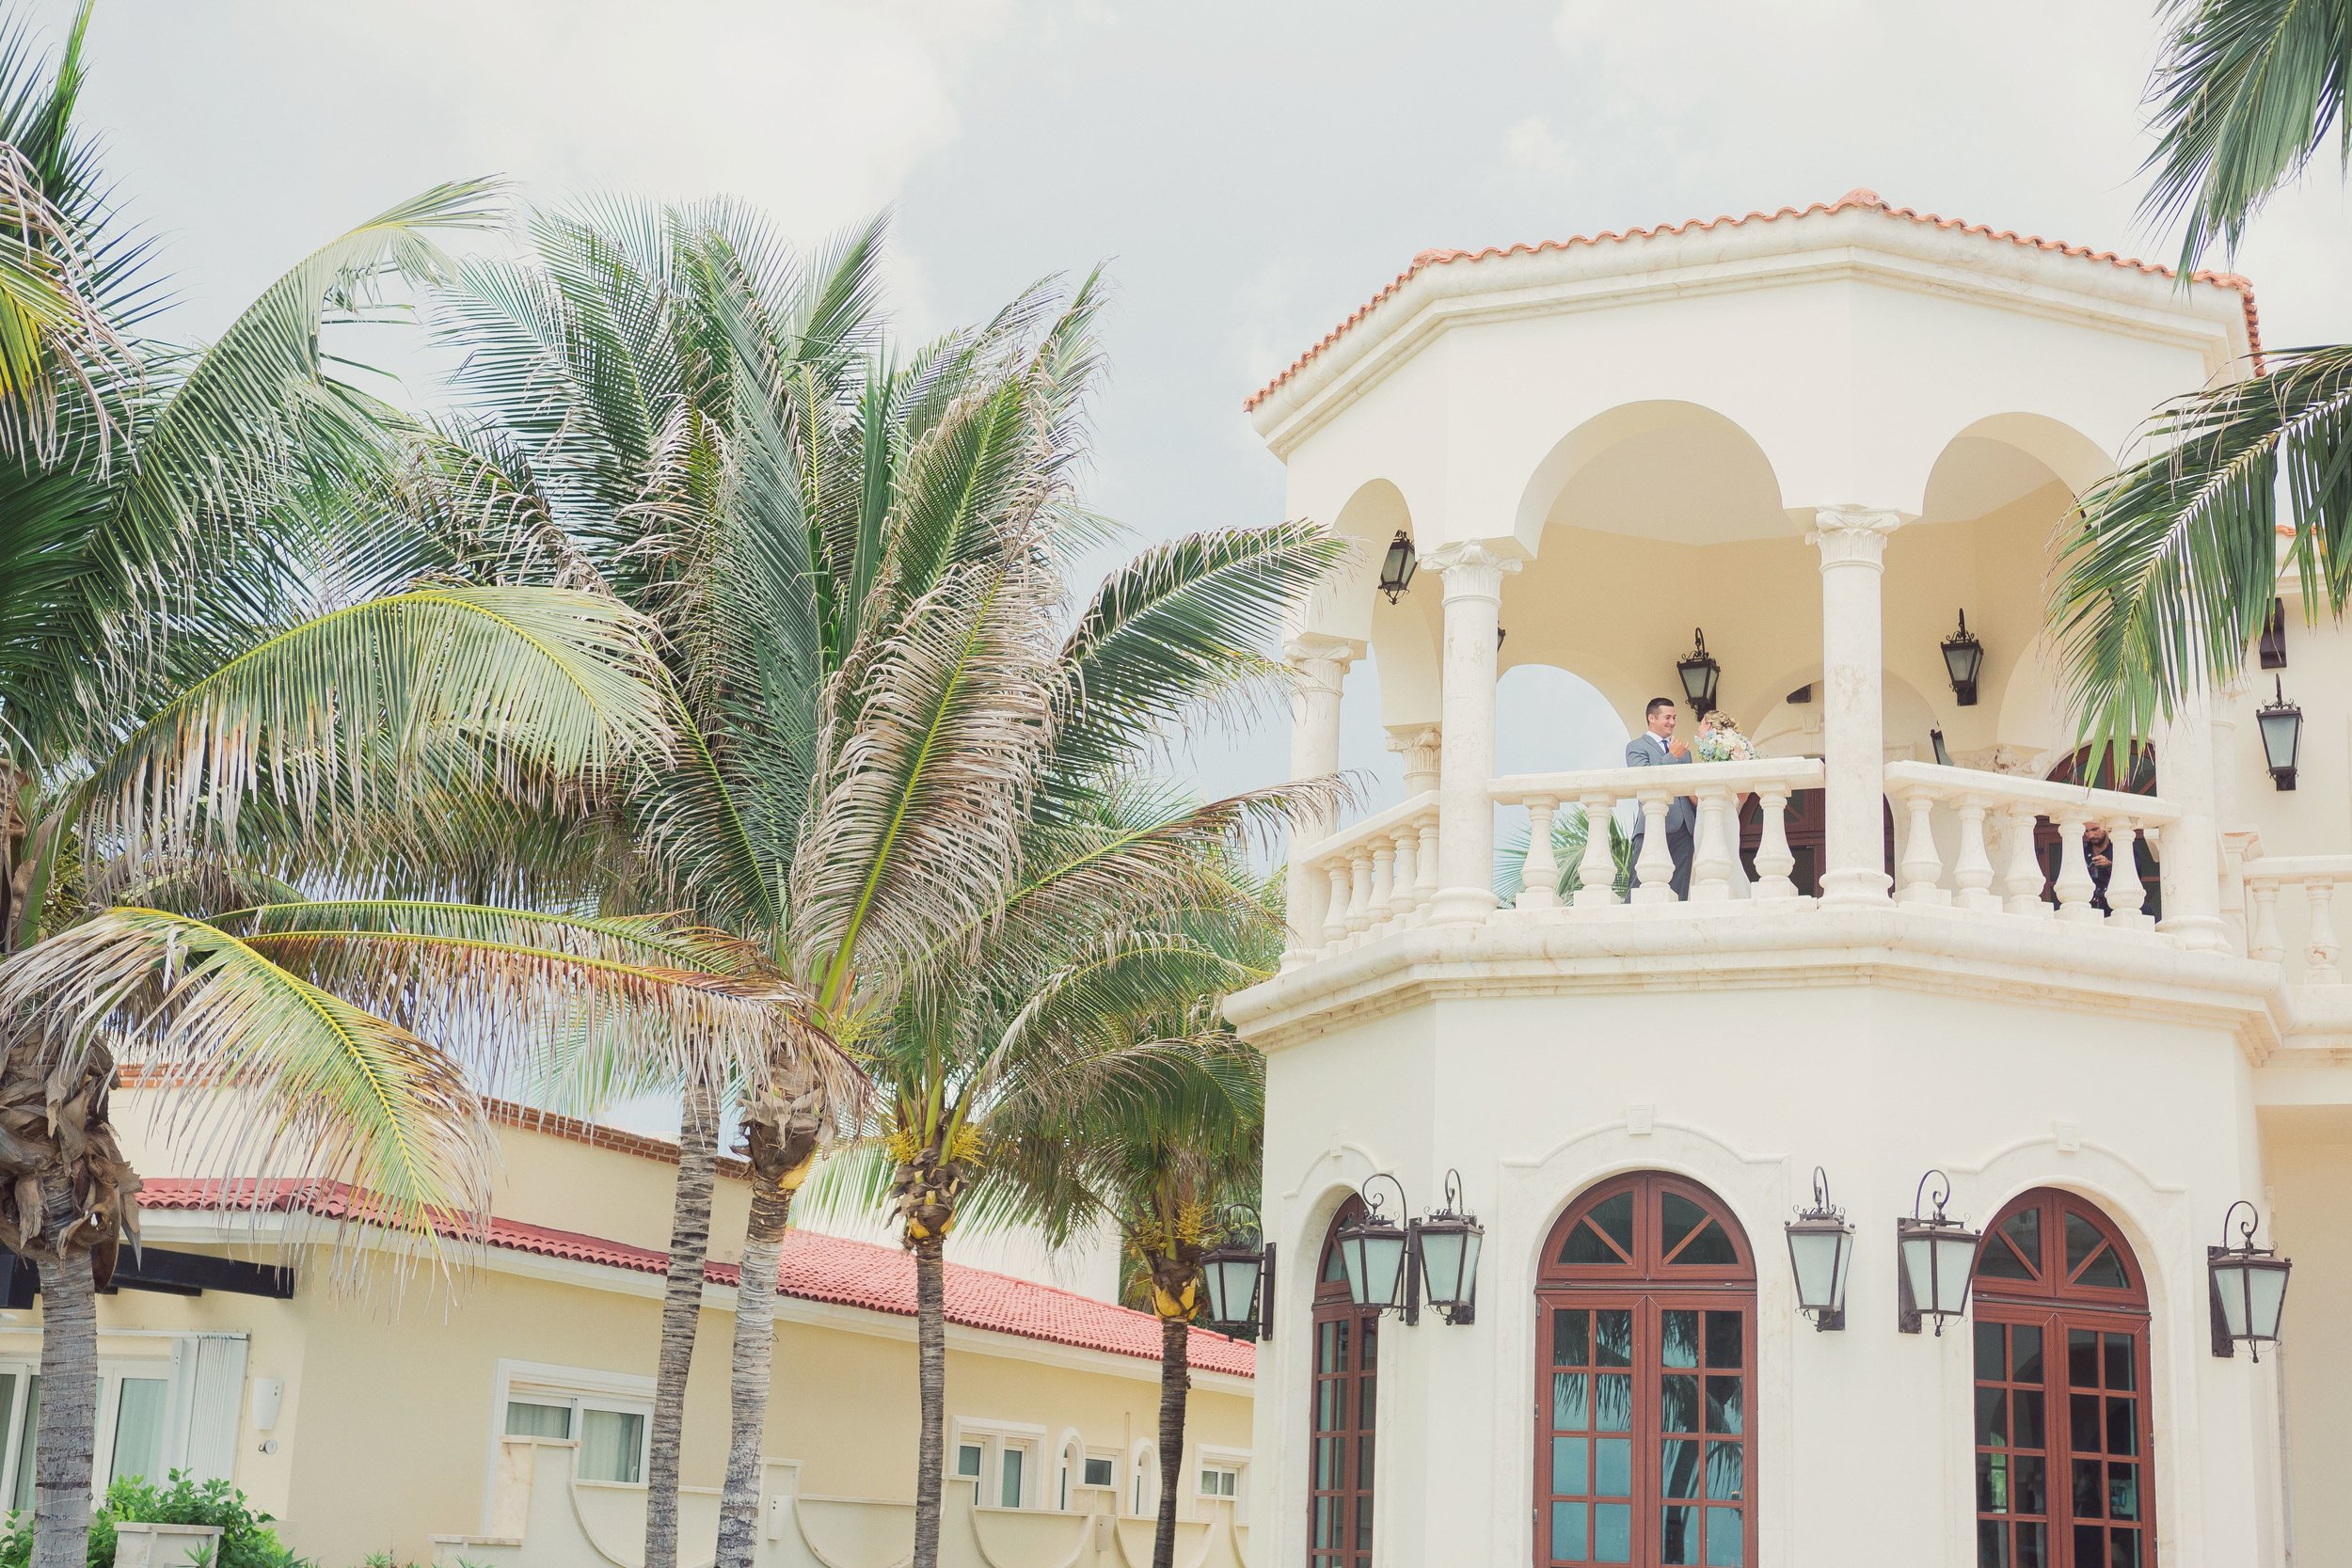 cancun-wedding-venue-villa-la-joya-52 copy-websize.jpg